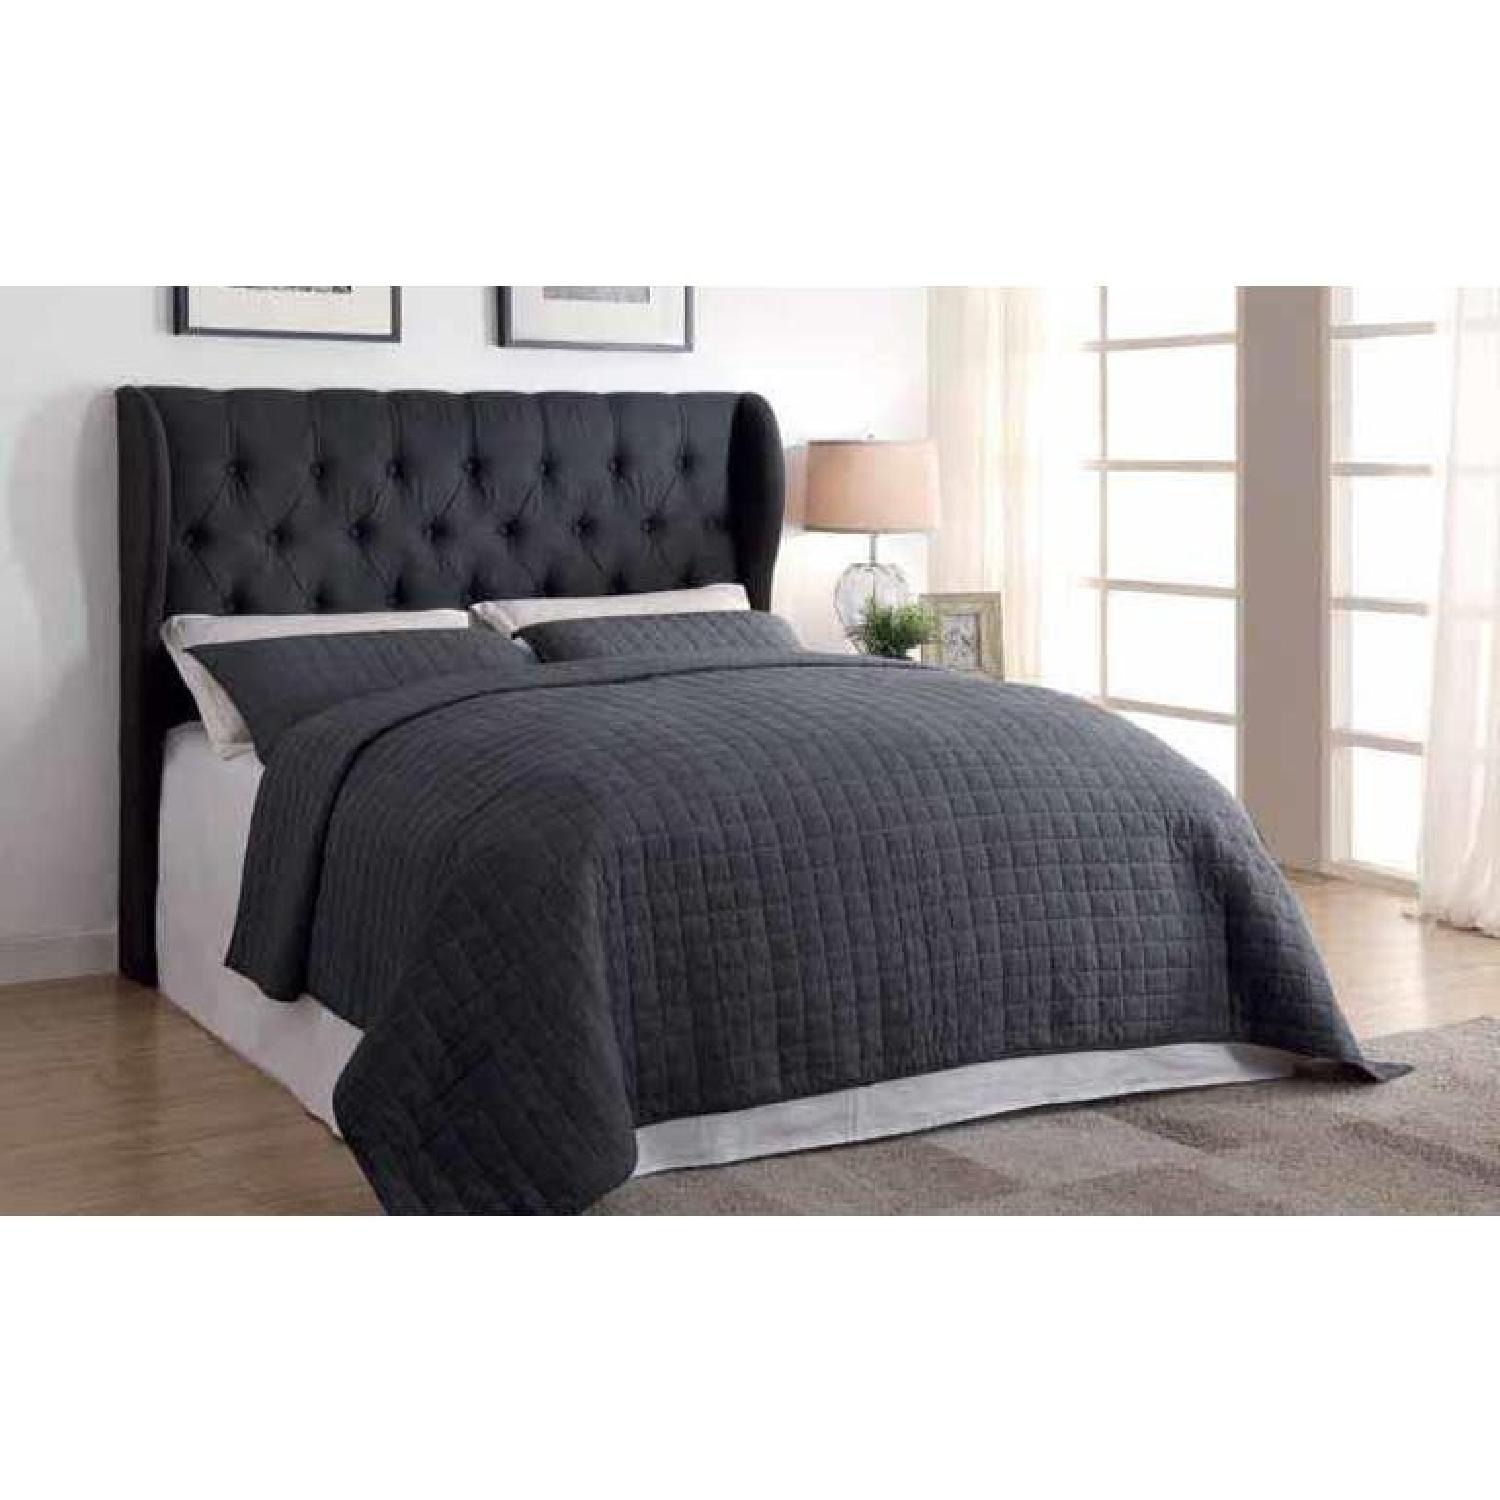 Demi Wing Full/Queen Button Tufted Headboard in Charcoal - image-2